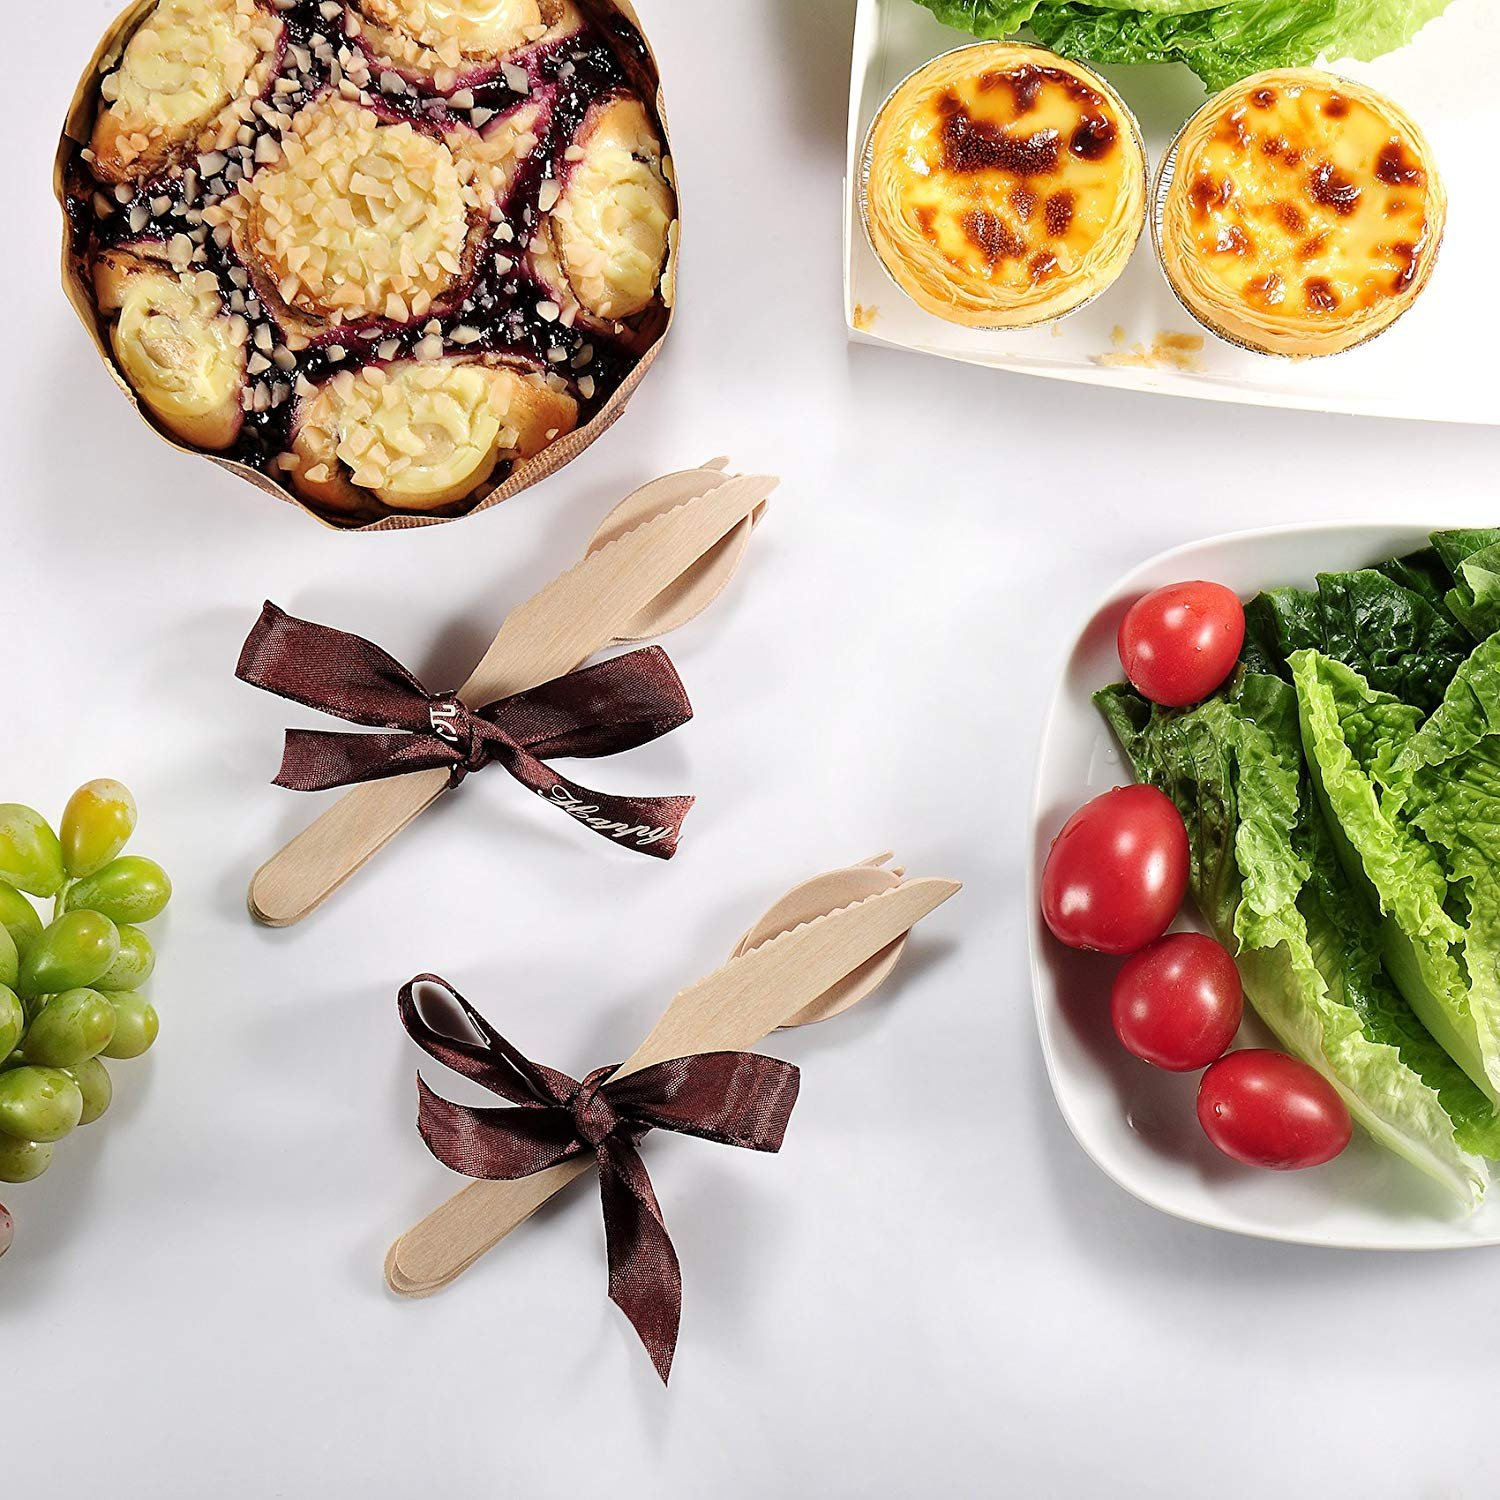 Wood set cutlery biodegradable-disposable-eco friendly-100 wooden forks-100 knives-100 spoons-For Parties, Picnics, Events & Weddings – Durable & Environmentally Safe by OFO WOOD (Image #3)